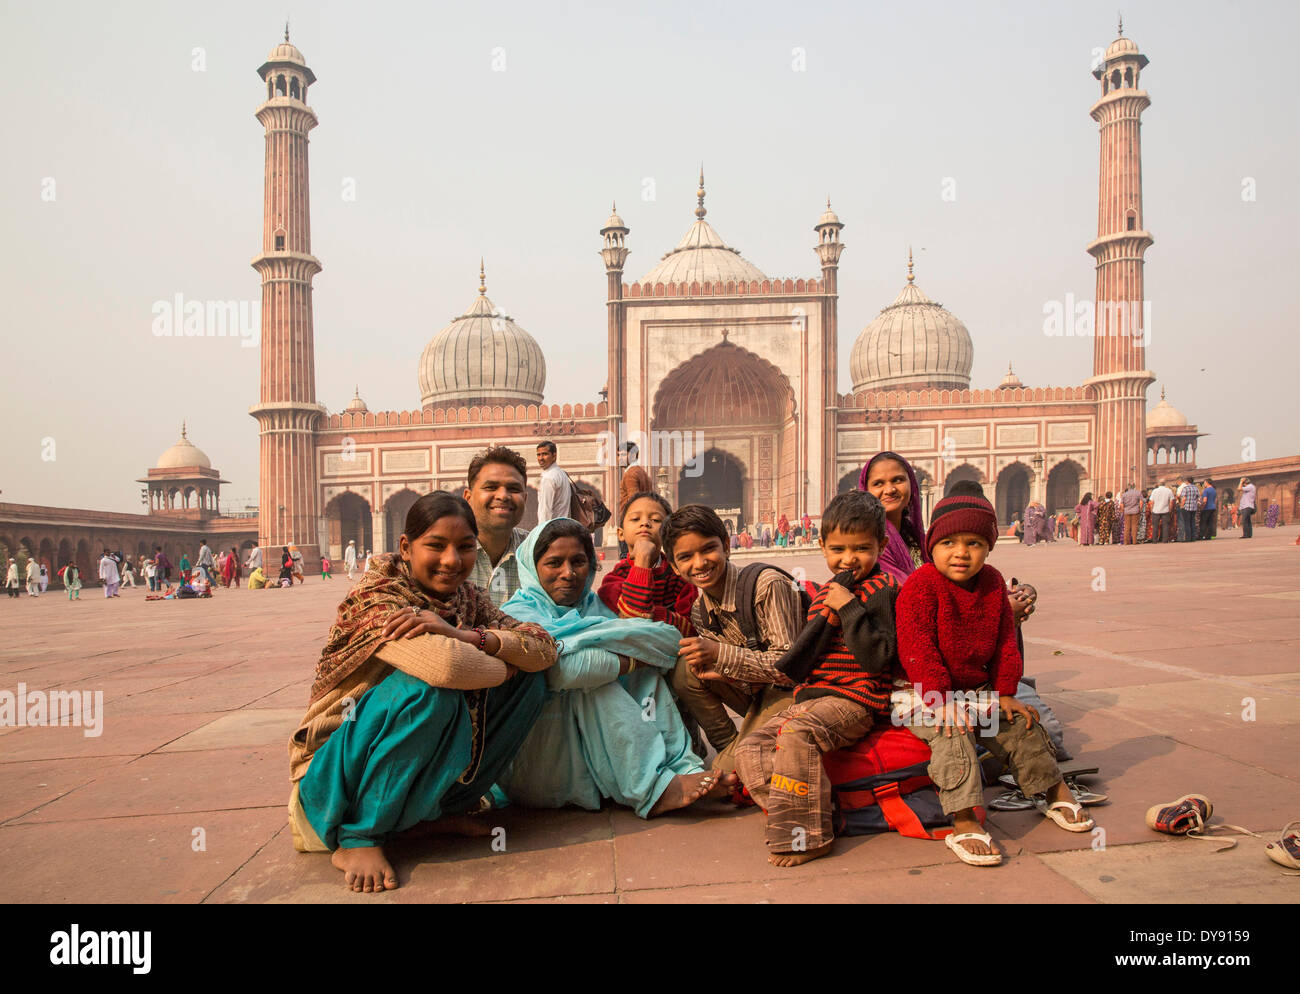 Jama Masjid mosque Old Delhi Delhi masterpiece Mogul's architecture Asia church religion towers place people group Indian, - Stock Image